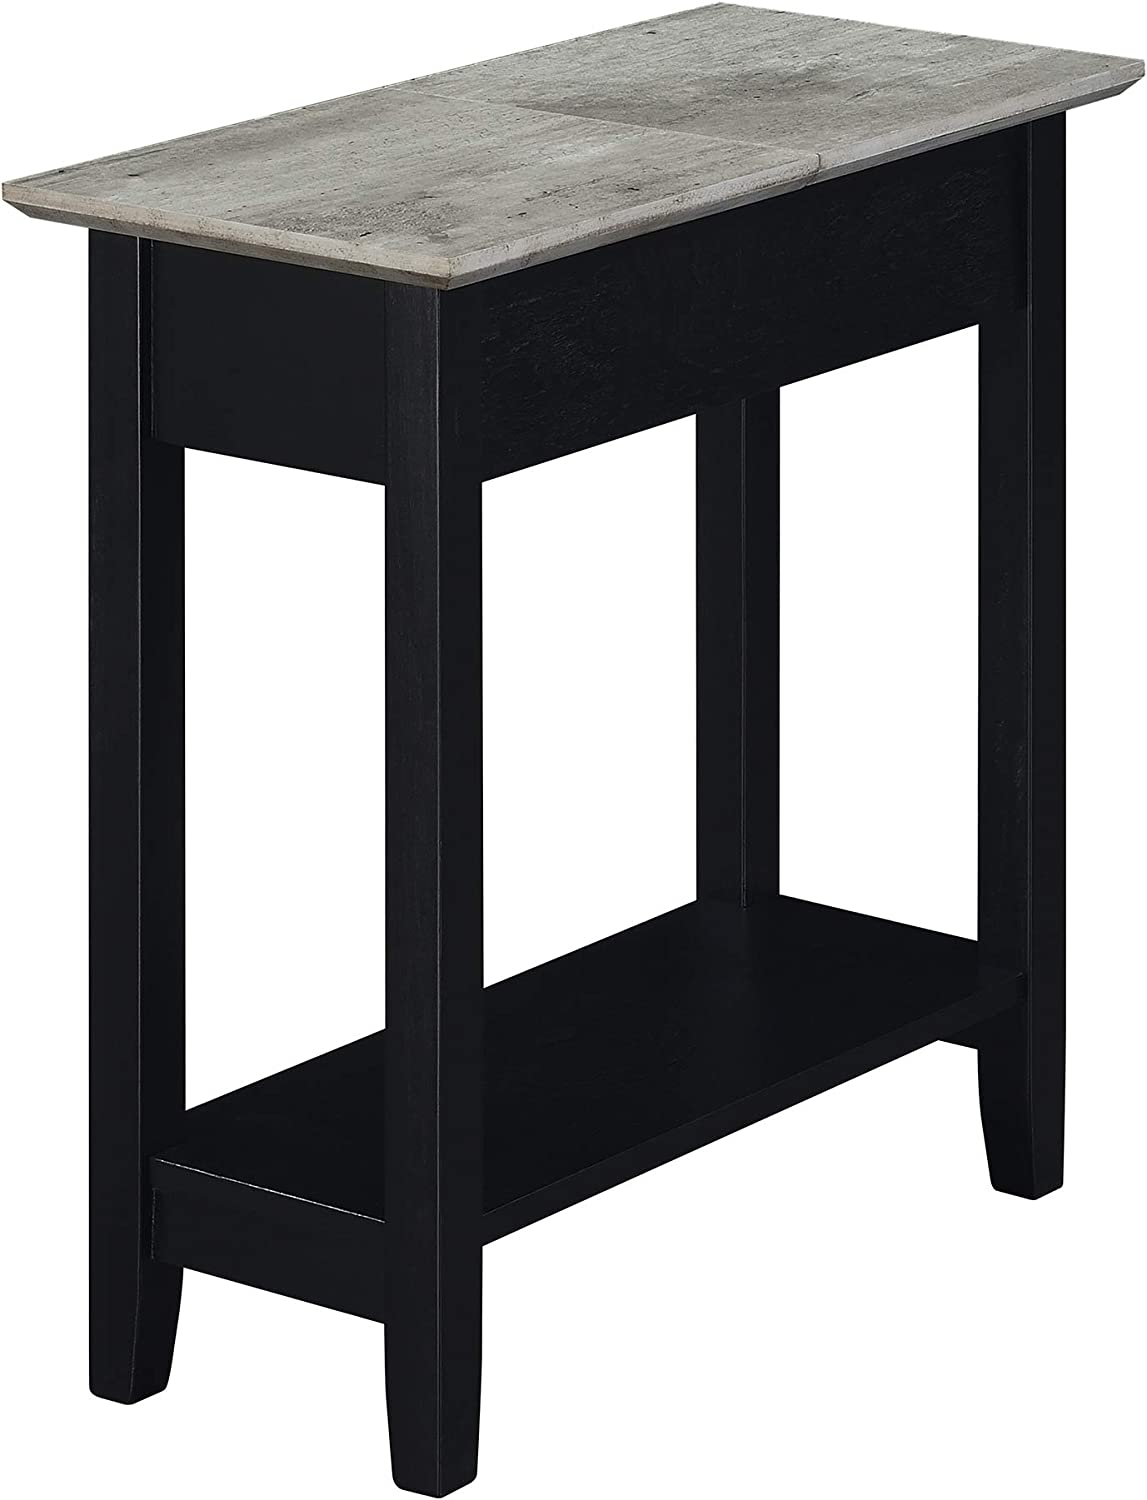 Convenience Concepts American Heritage Flip Top End Table, Faux Birch/Black